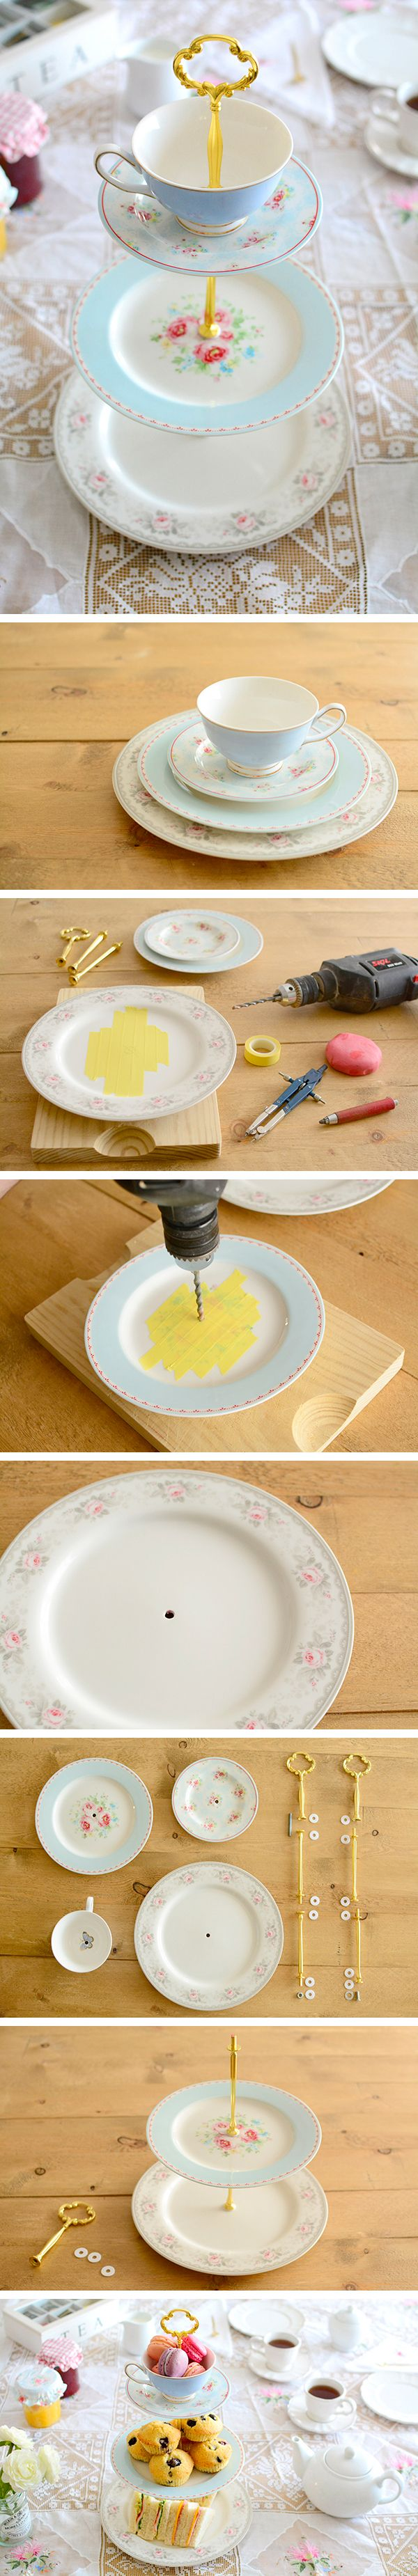 DIY: Cake stand with plates and teacup - Cake stand con platos y taza